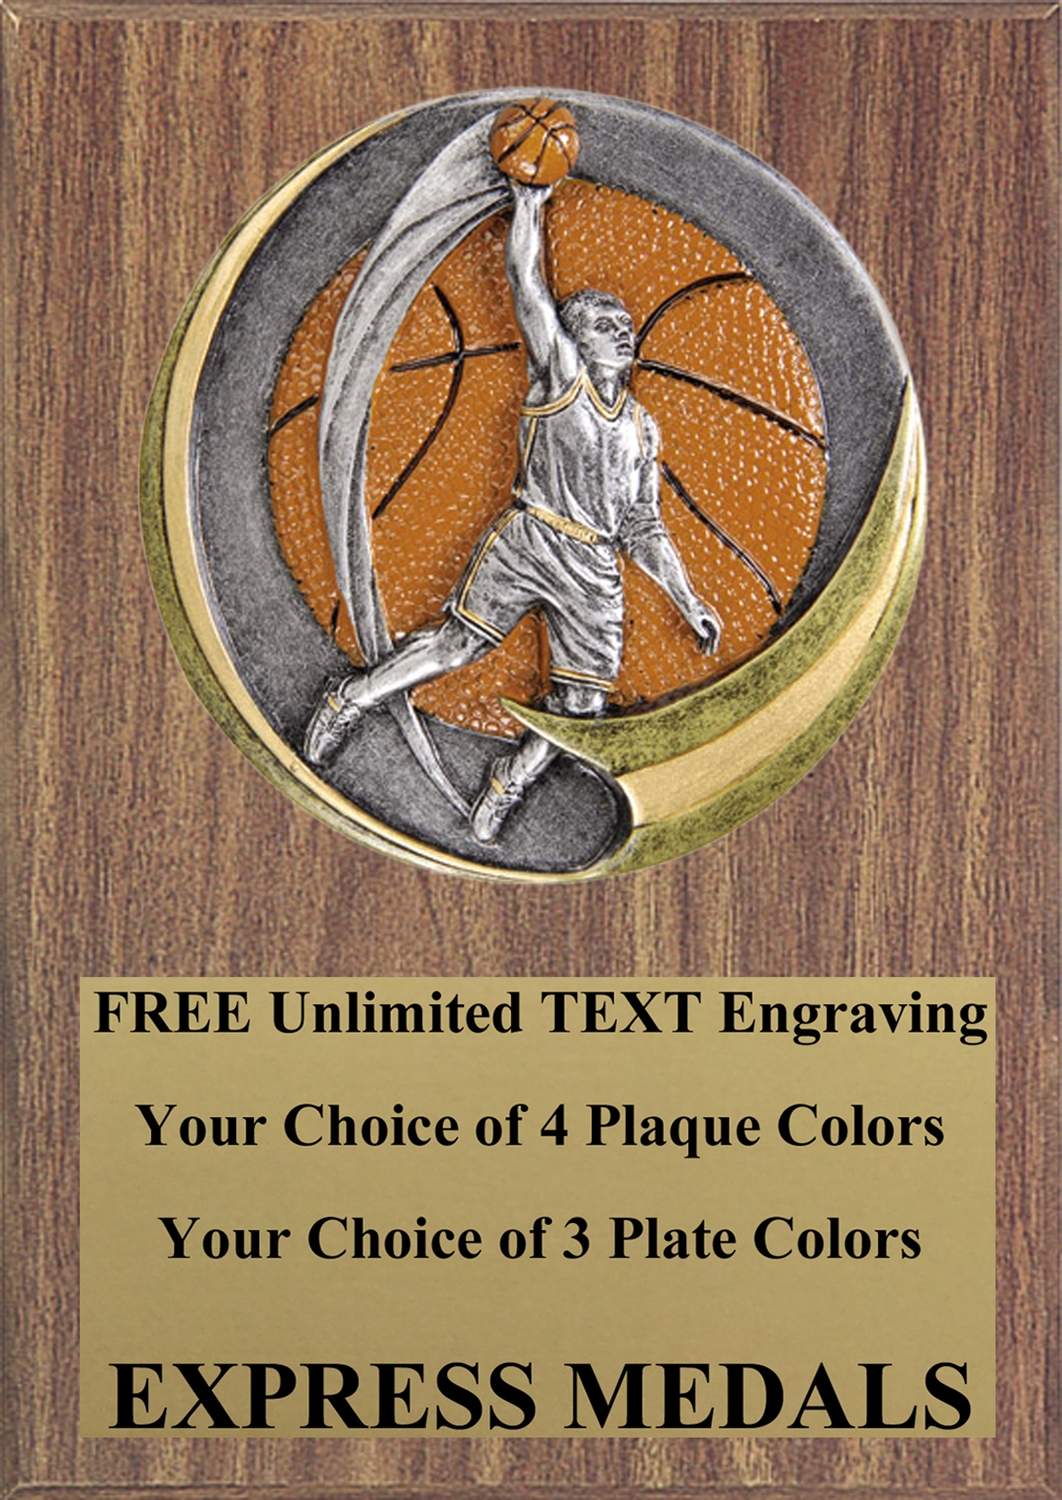 Motion Extreme Male Basketball Plaque 4x6 & 5x7 MX107-VL